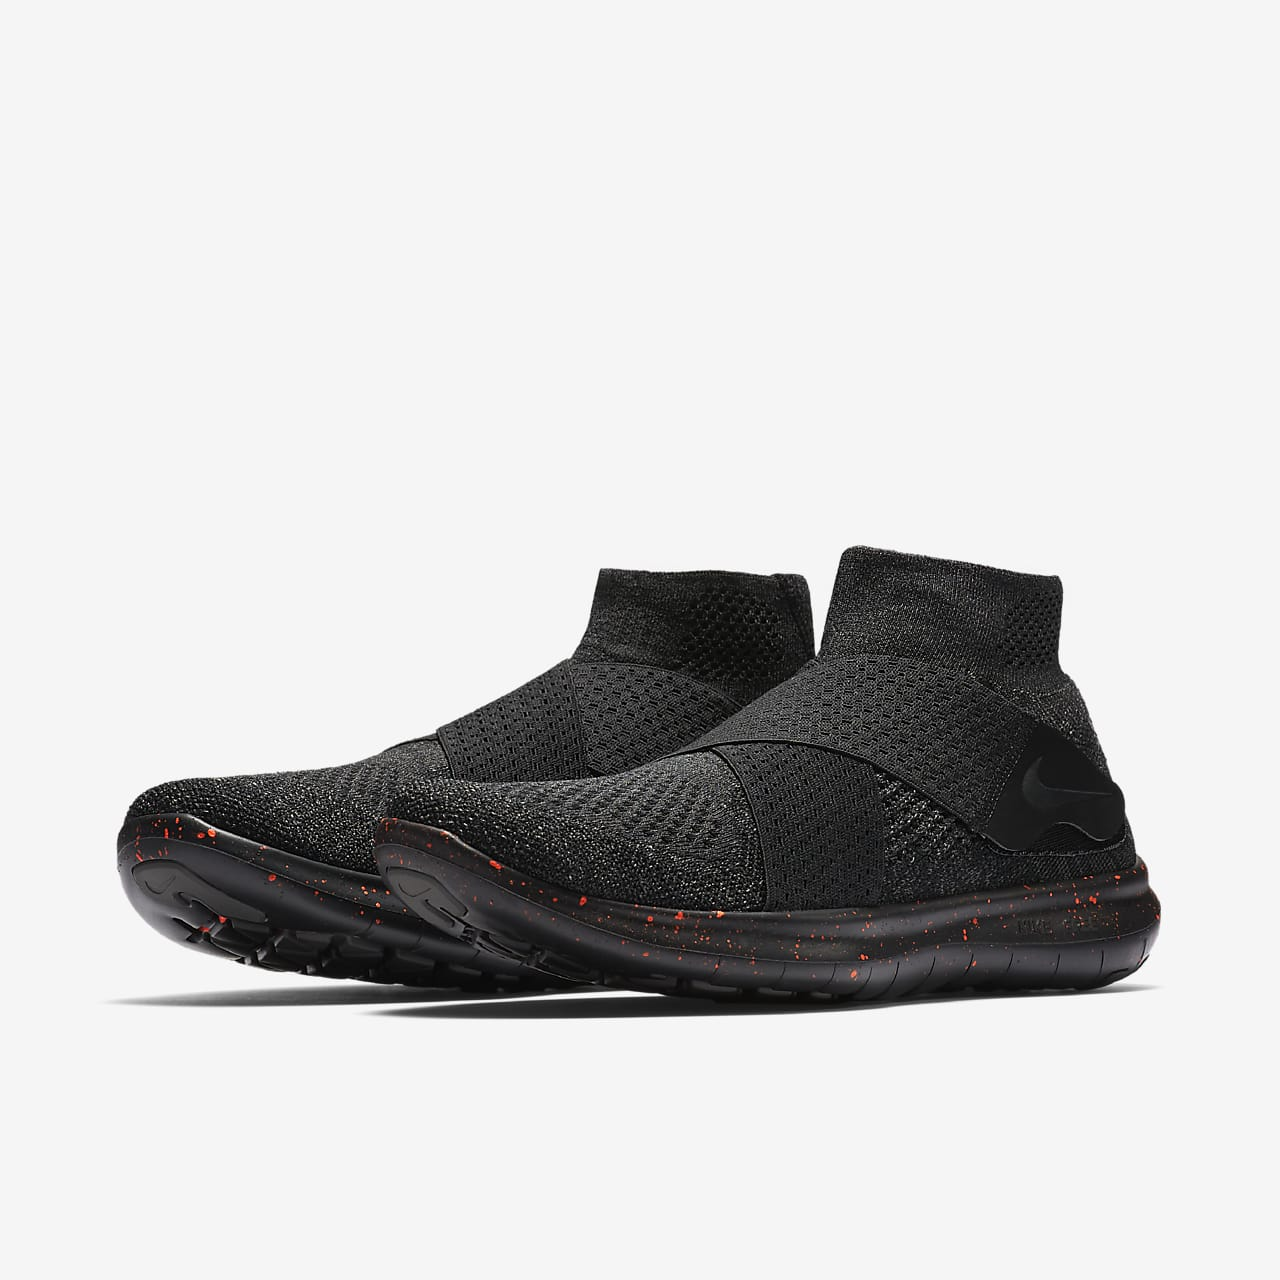 30+ Nike Men's Free Rn Motion Flyknit 2017 Running Shoes – Black/Anthracite Images